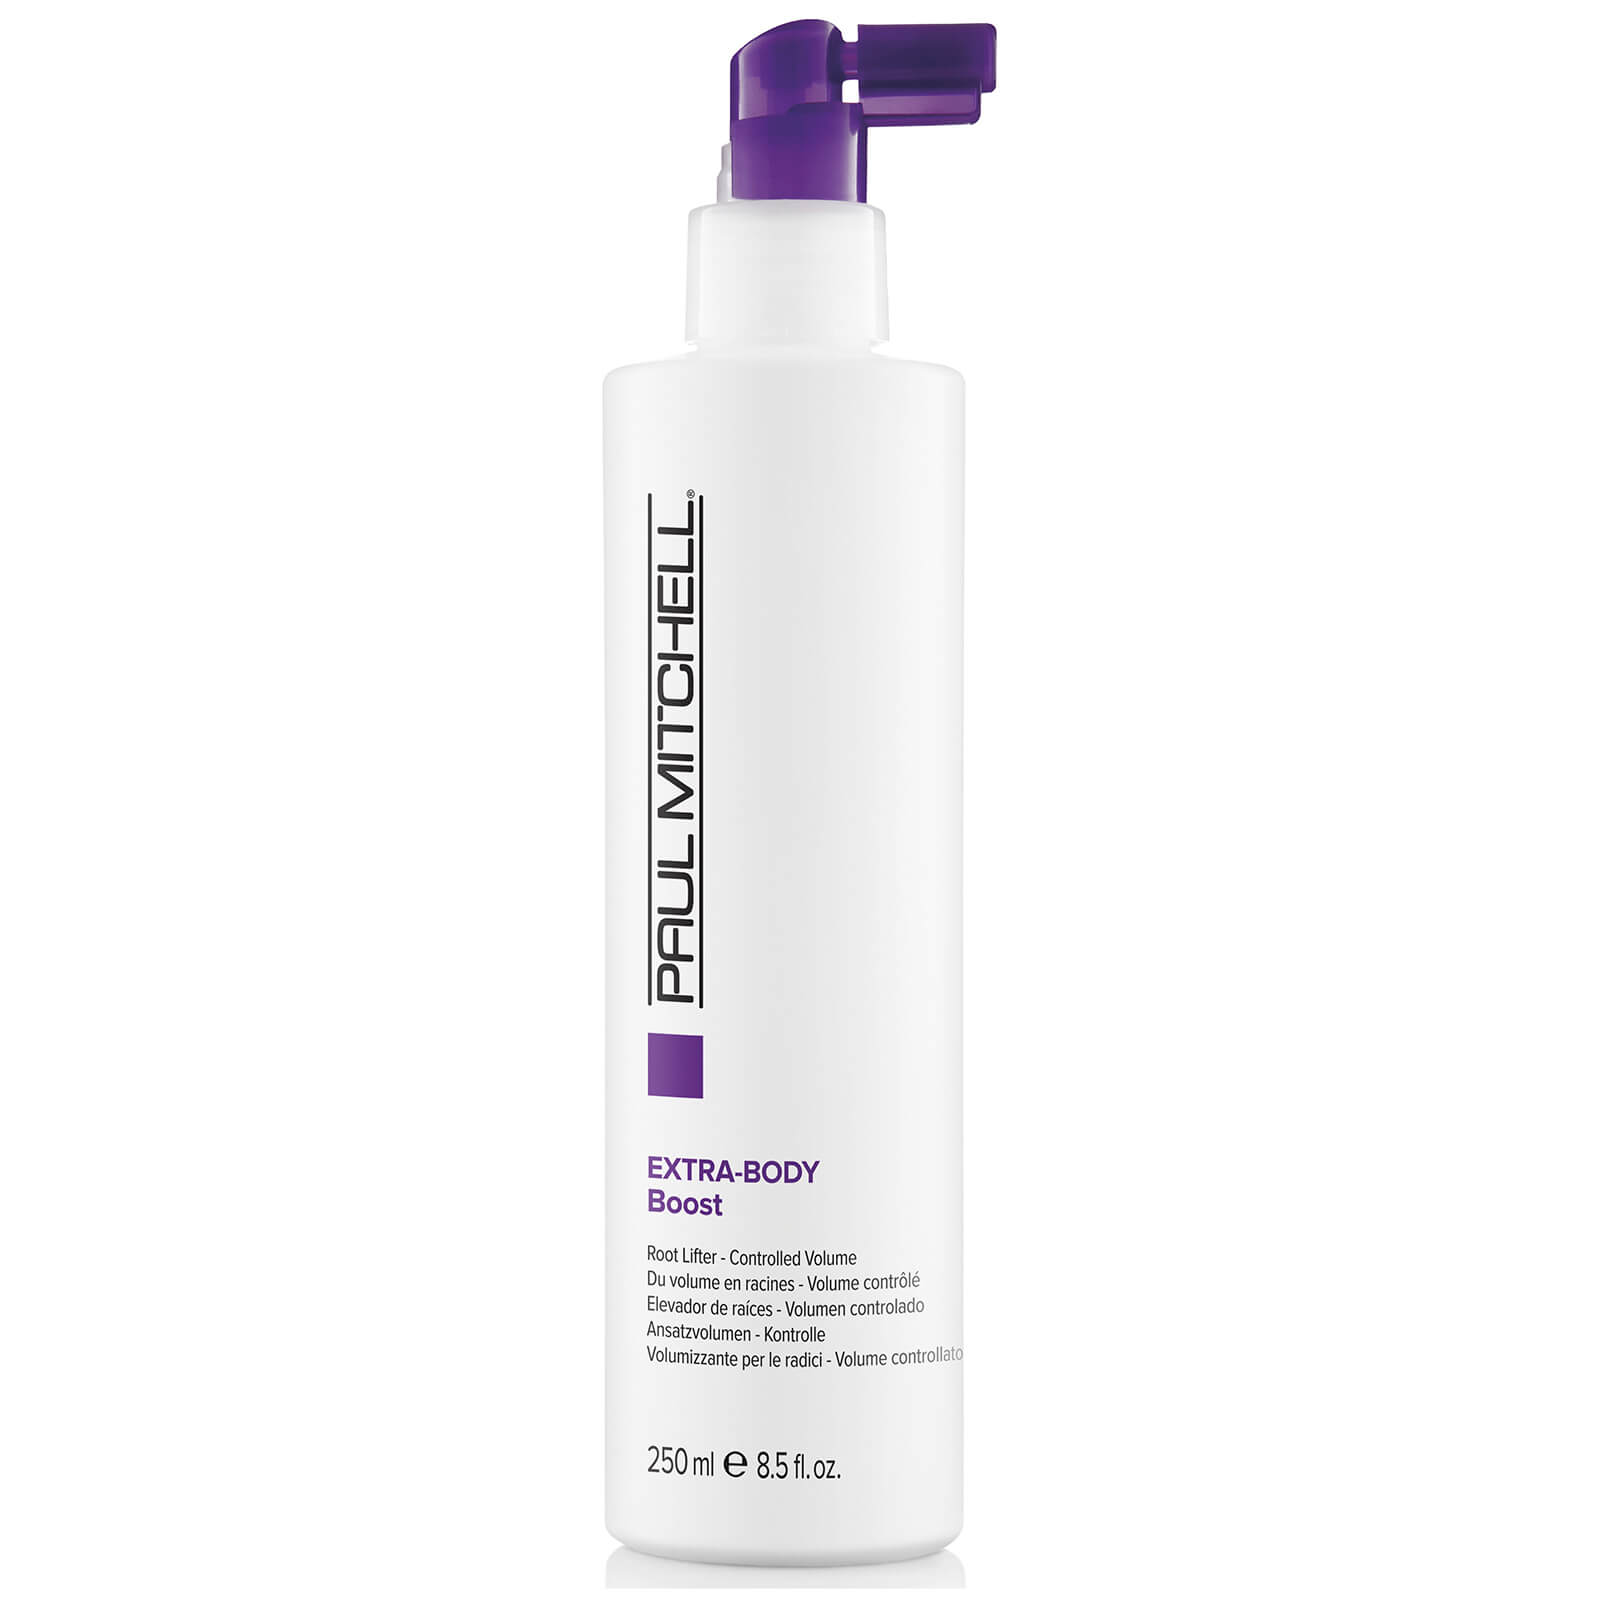 Paul Mitchell Extra-body Daily Boost - 250ml